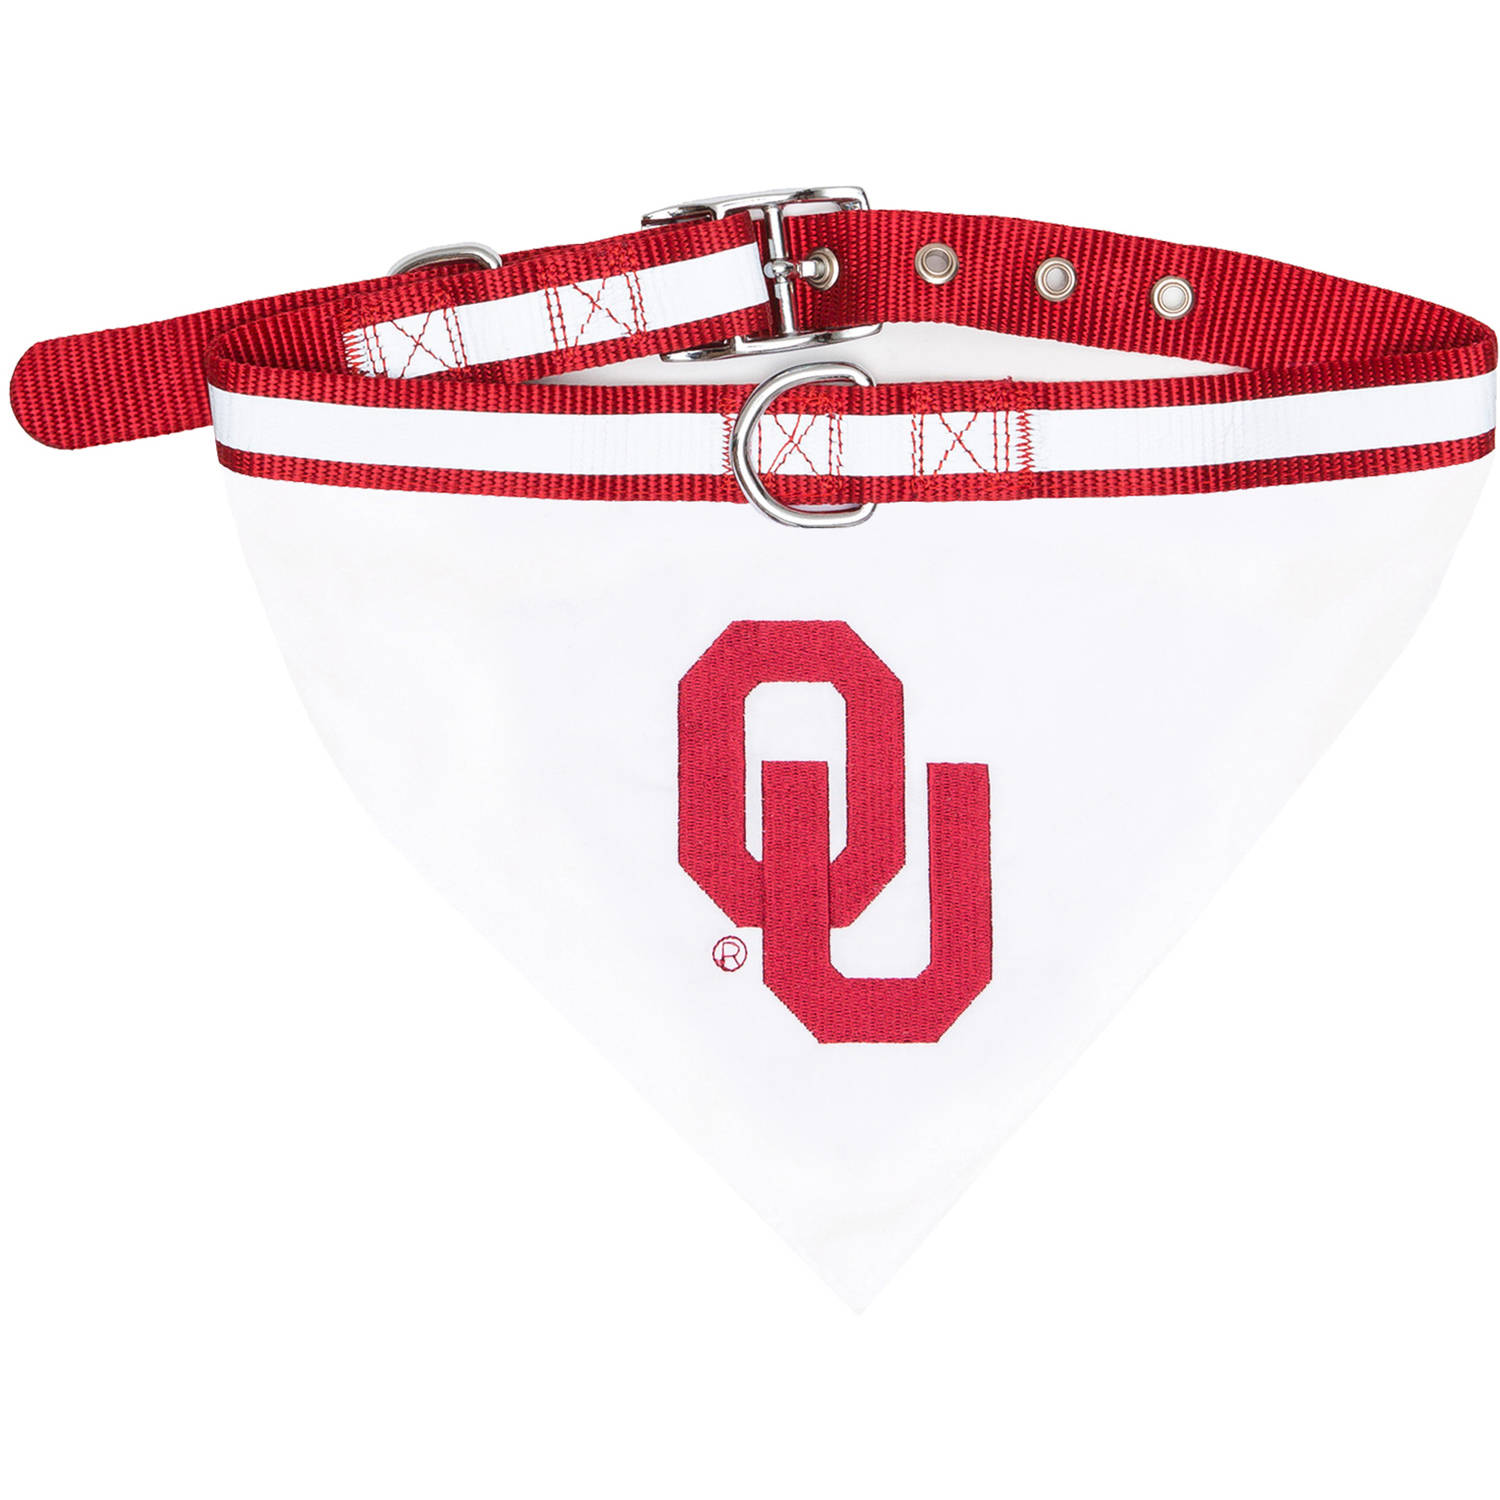 Pets First College Oklahoma Sooners Pet Bandana, 3 Sizes Available. With Collar